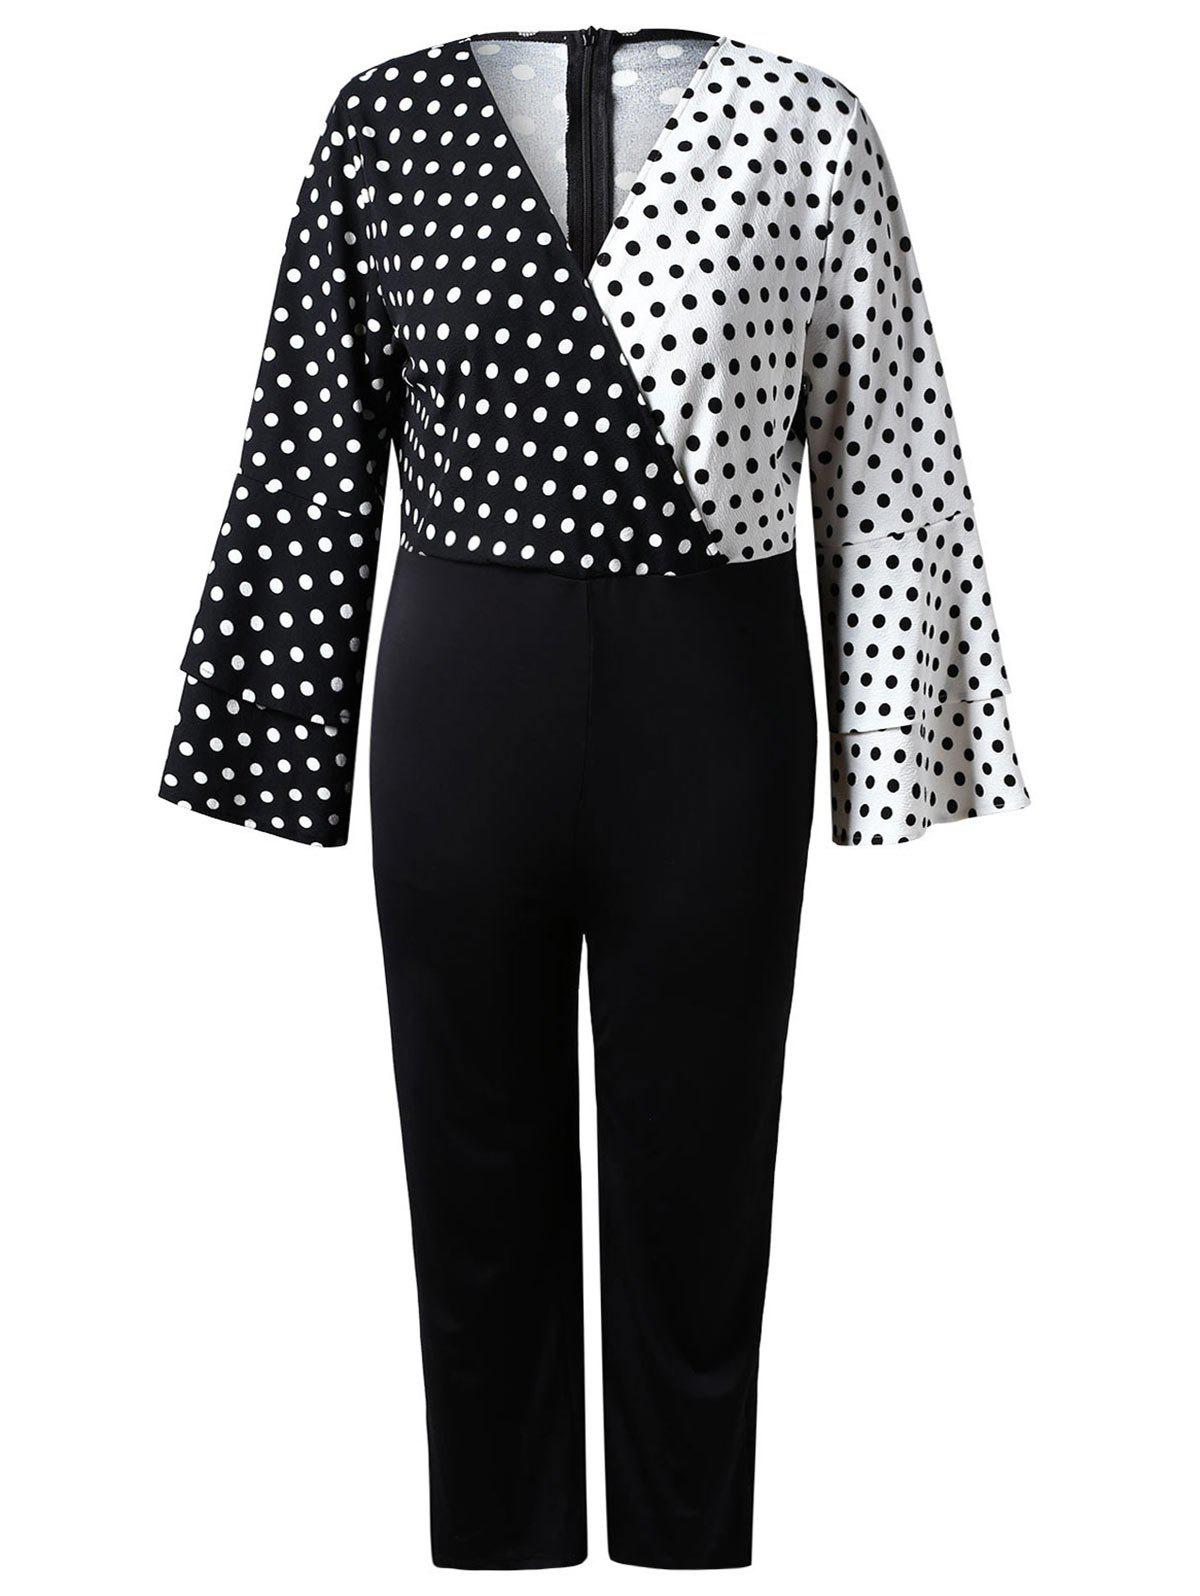 Fancy Plus Size Contrast Dotted Jumpsuit